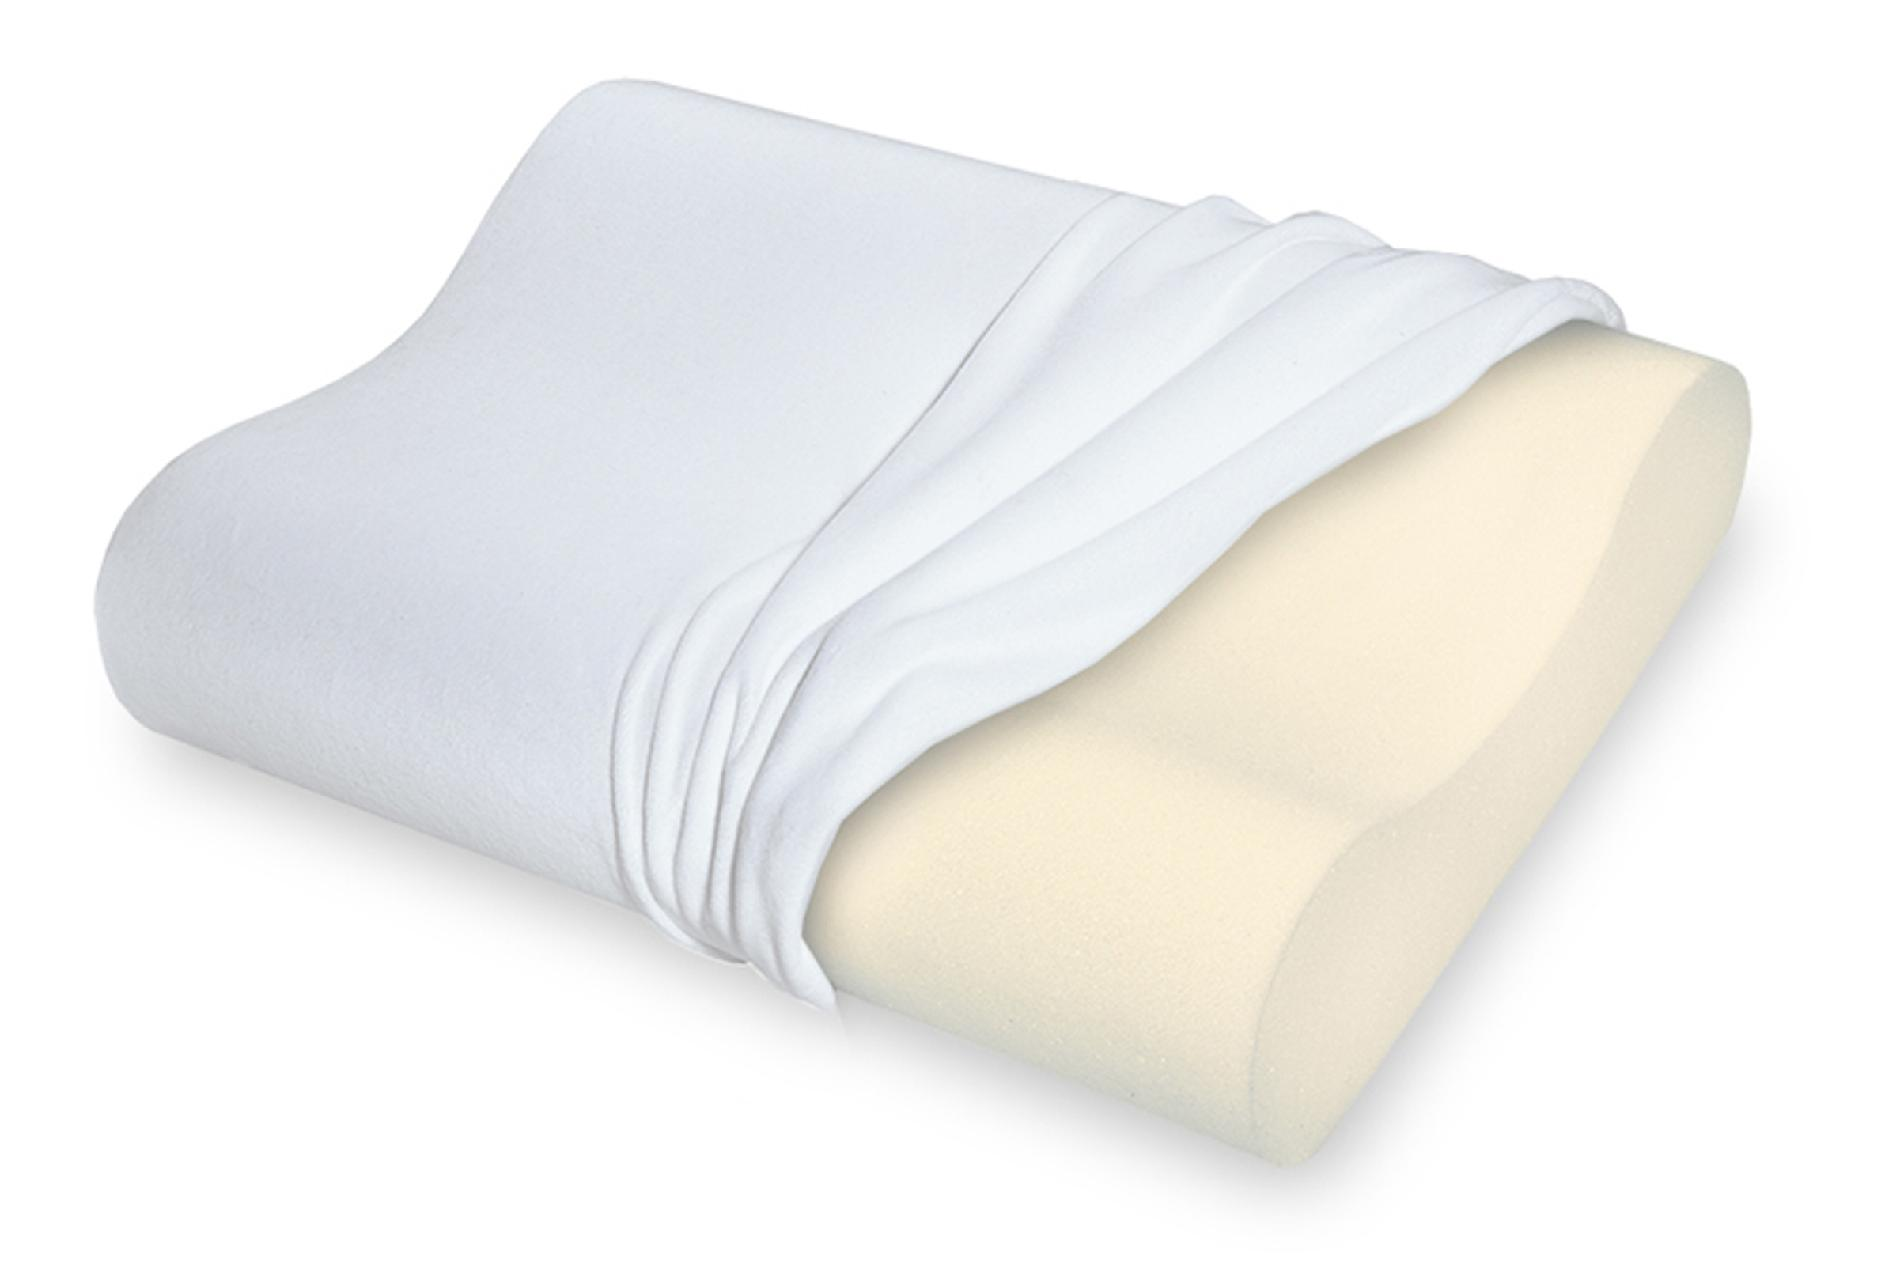 Sleep Innovations Touch of Comfort Gel Memory Foam Pillow